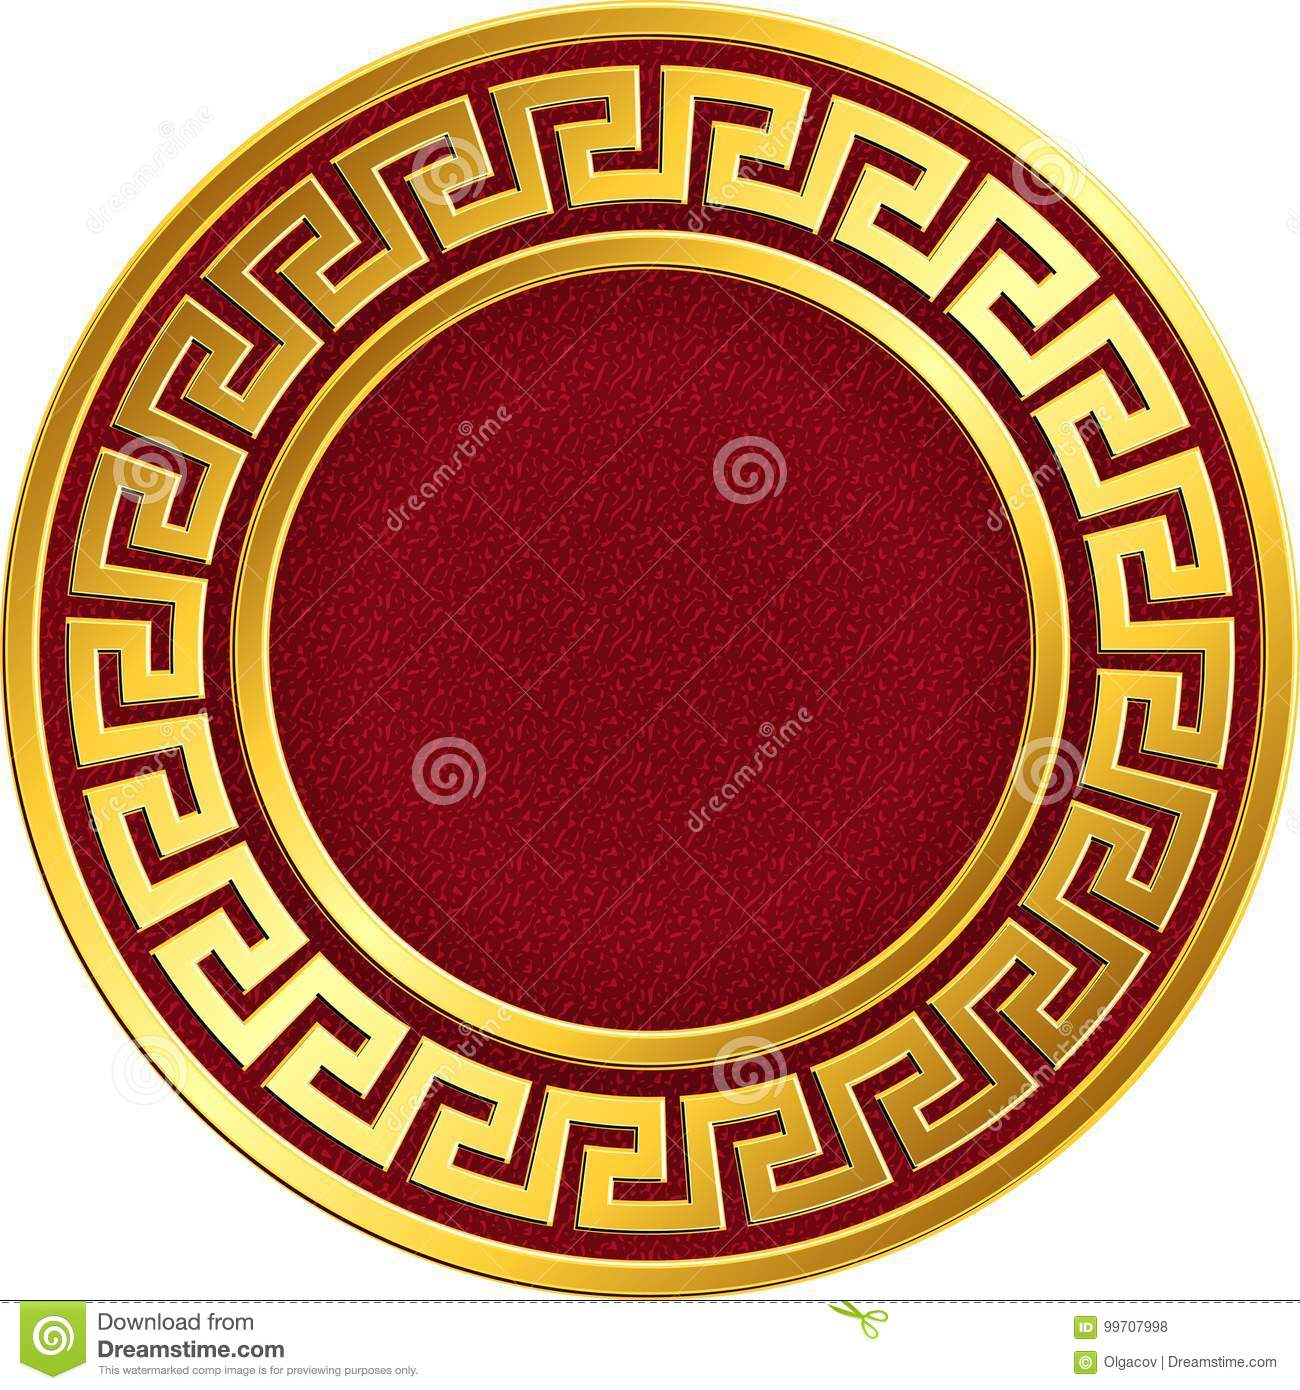 80ad3f60ebc7 Golden round frame with traditional vintage Greek Meander pattern on the  red background for design template. Gold pattern for decorative tiles and  plates ...